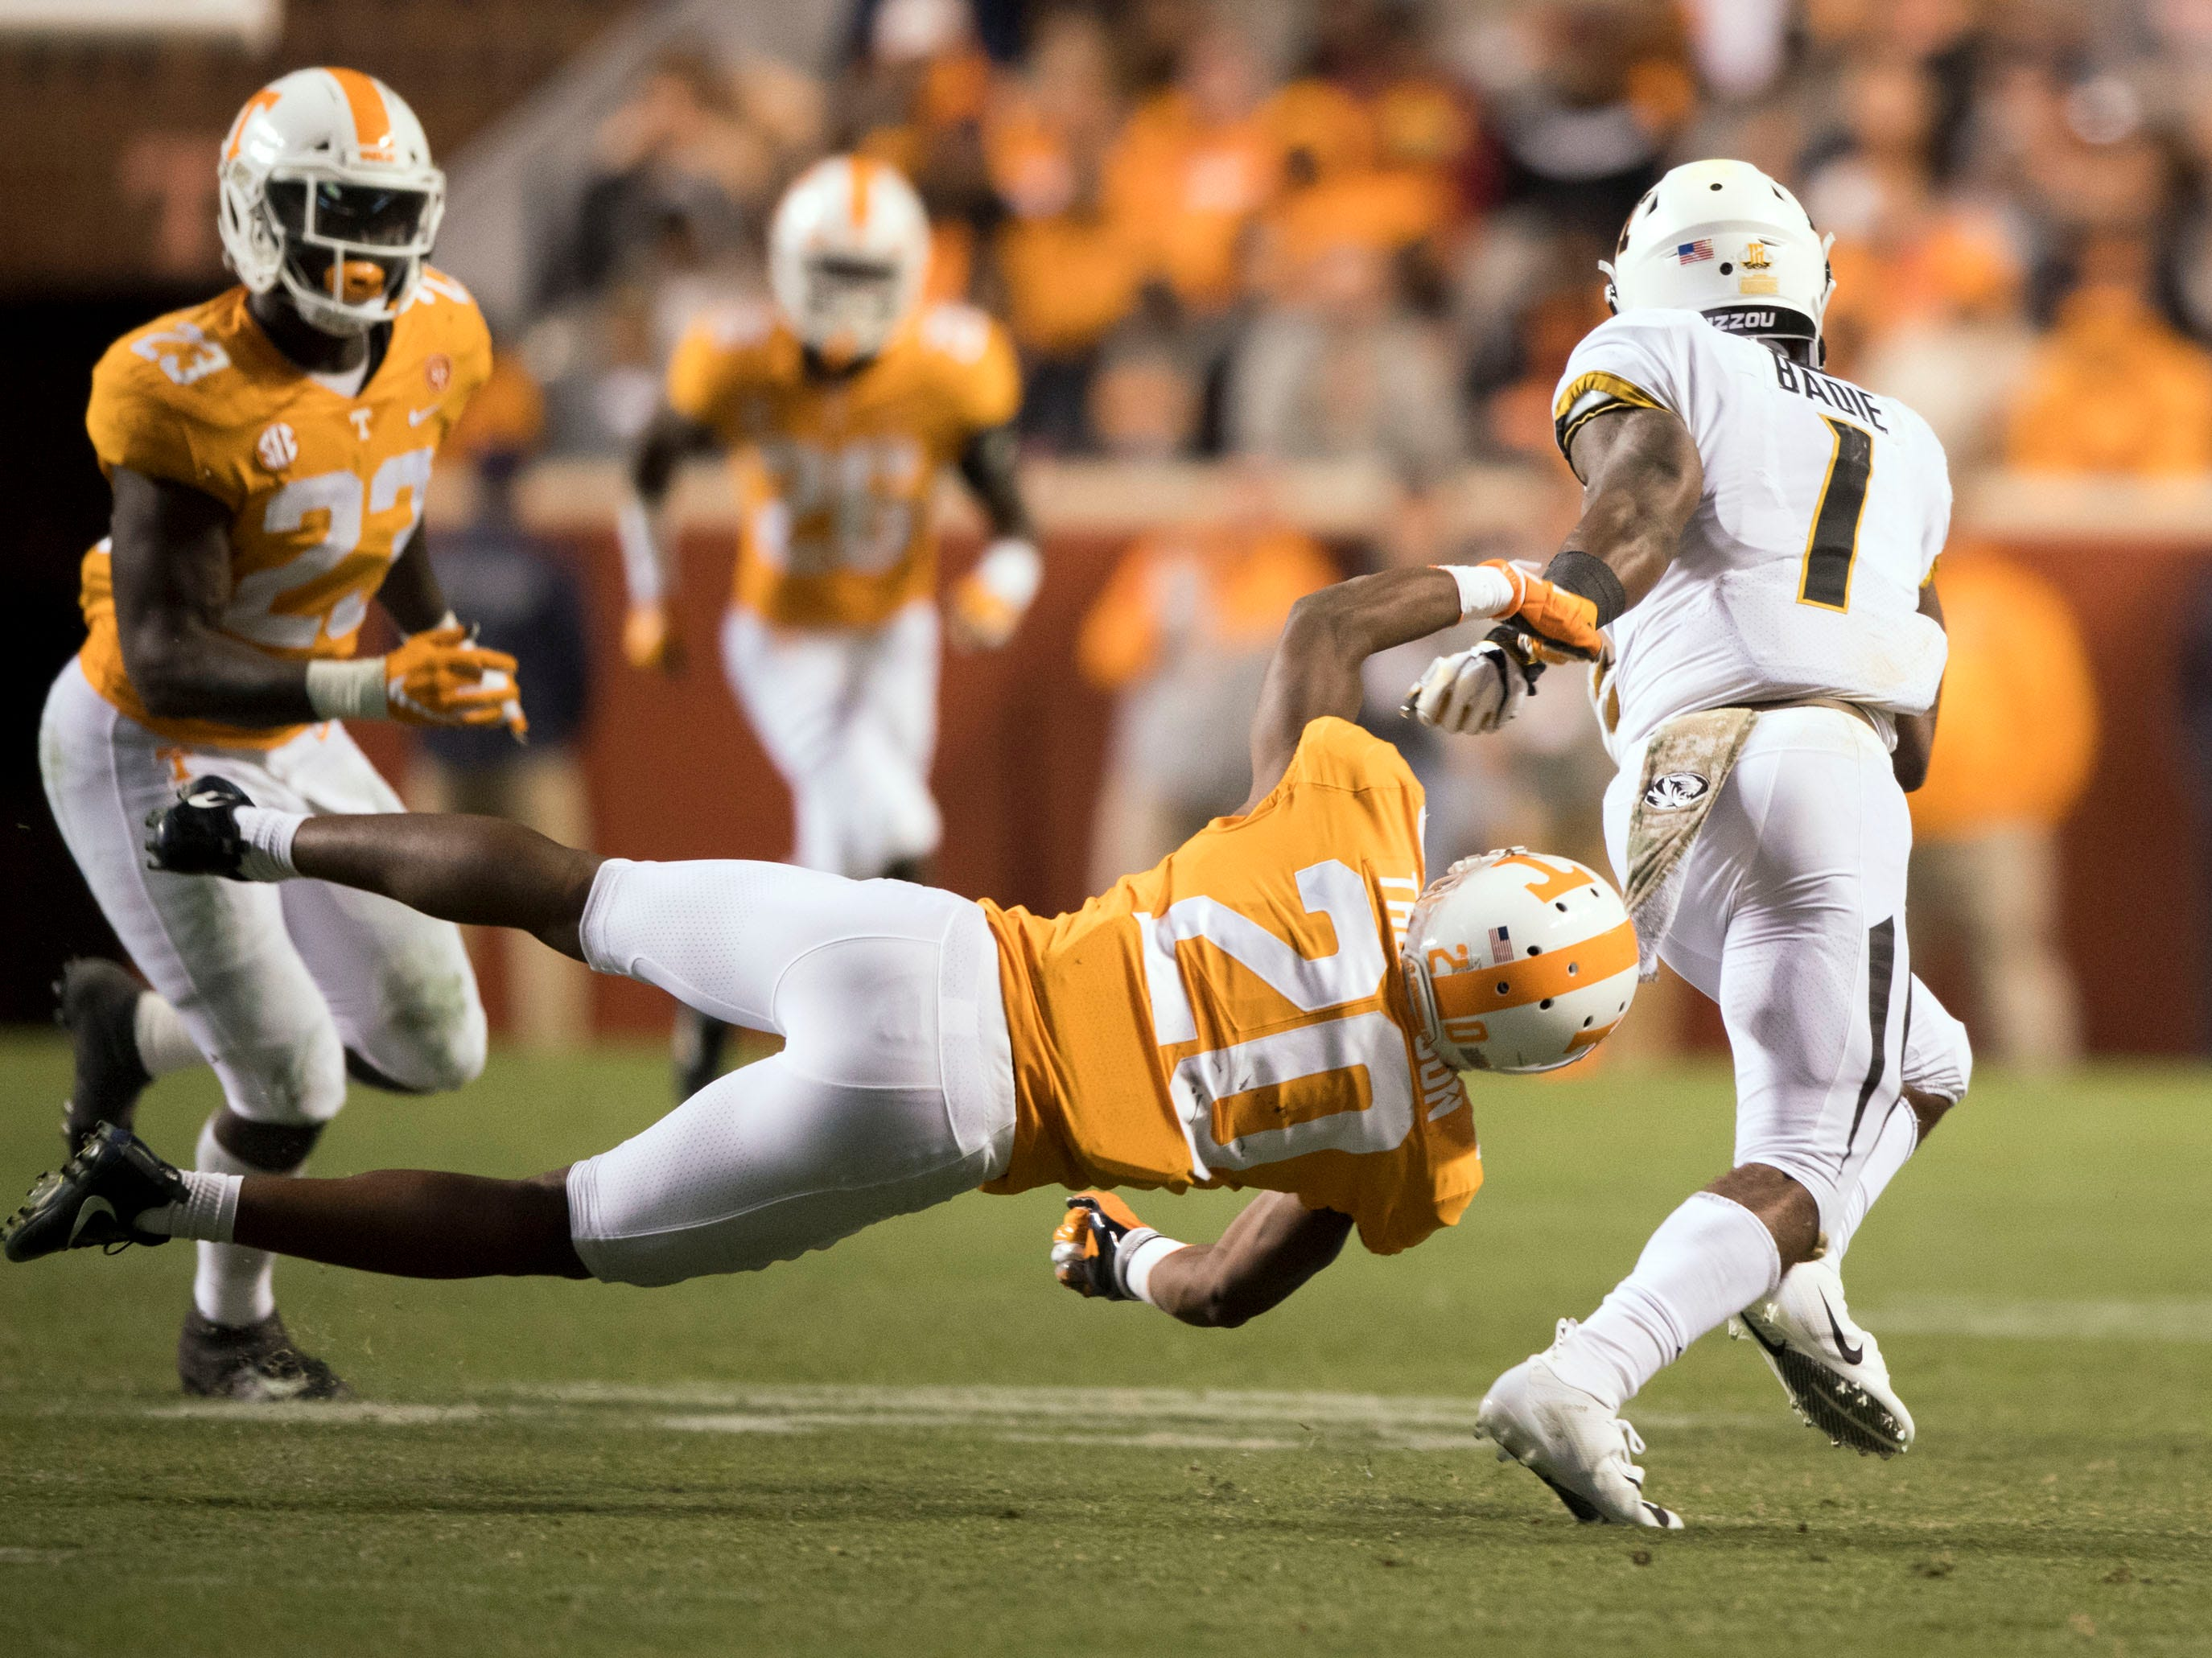 Missouri running back Tyler Badie (1) gets past Tennessee defensive back Bryce Thompson (20) during the Tennessee and Missouri football game on Saturday, November 17, 2018.